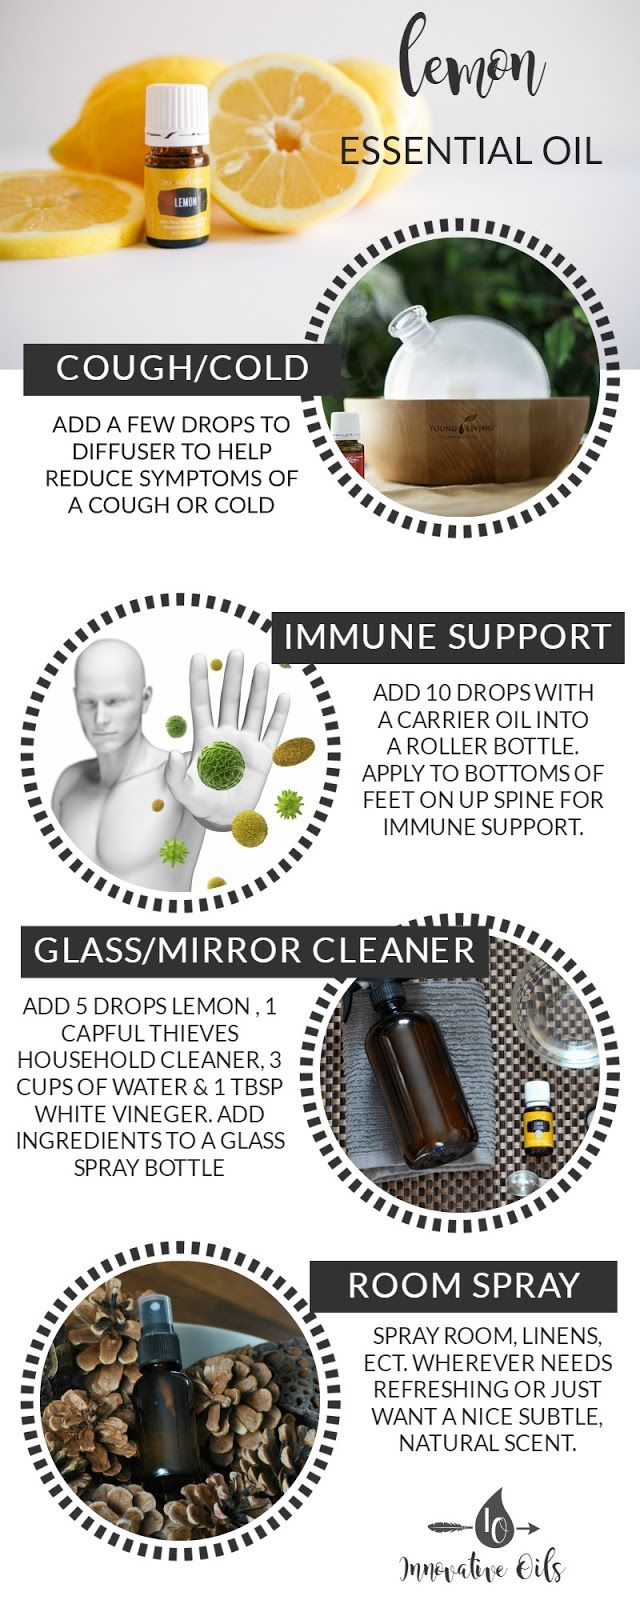 BENEFITS AND USES FOR LEMON ESSENTIAL OIL